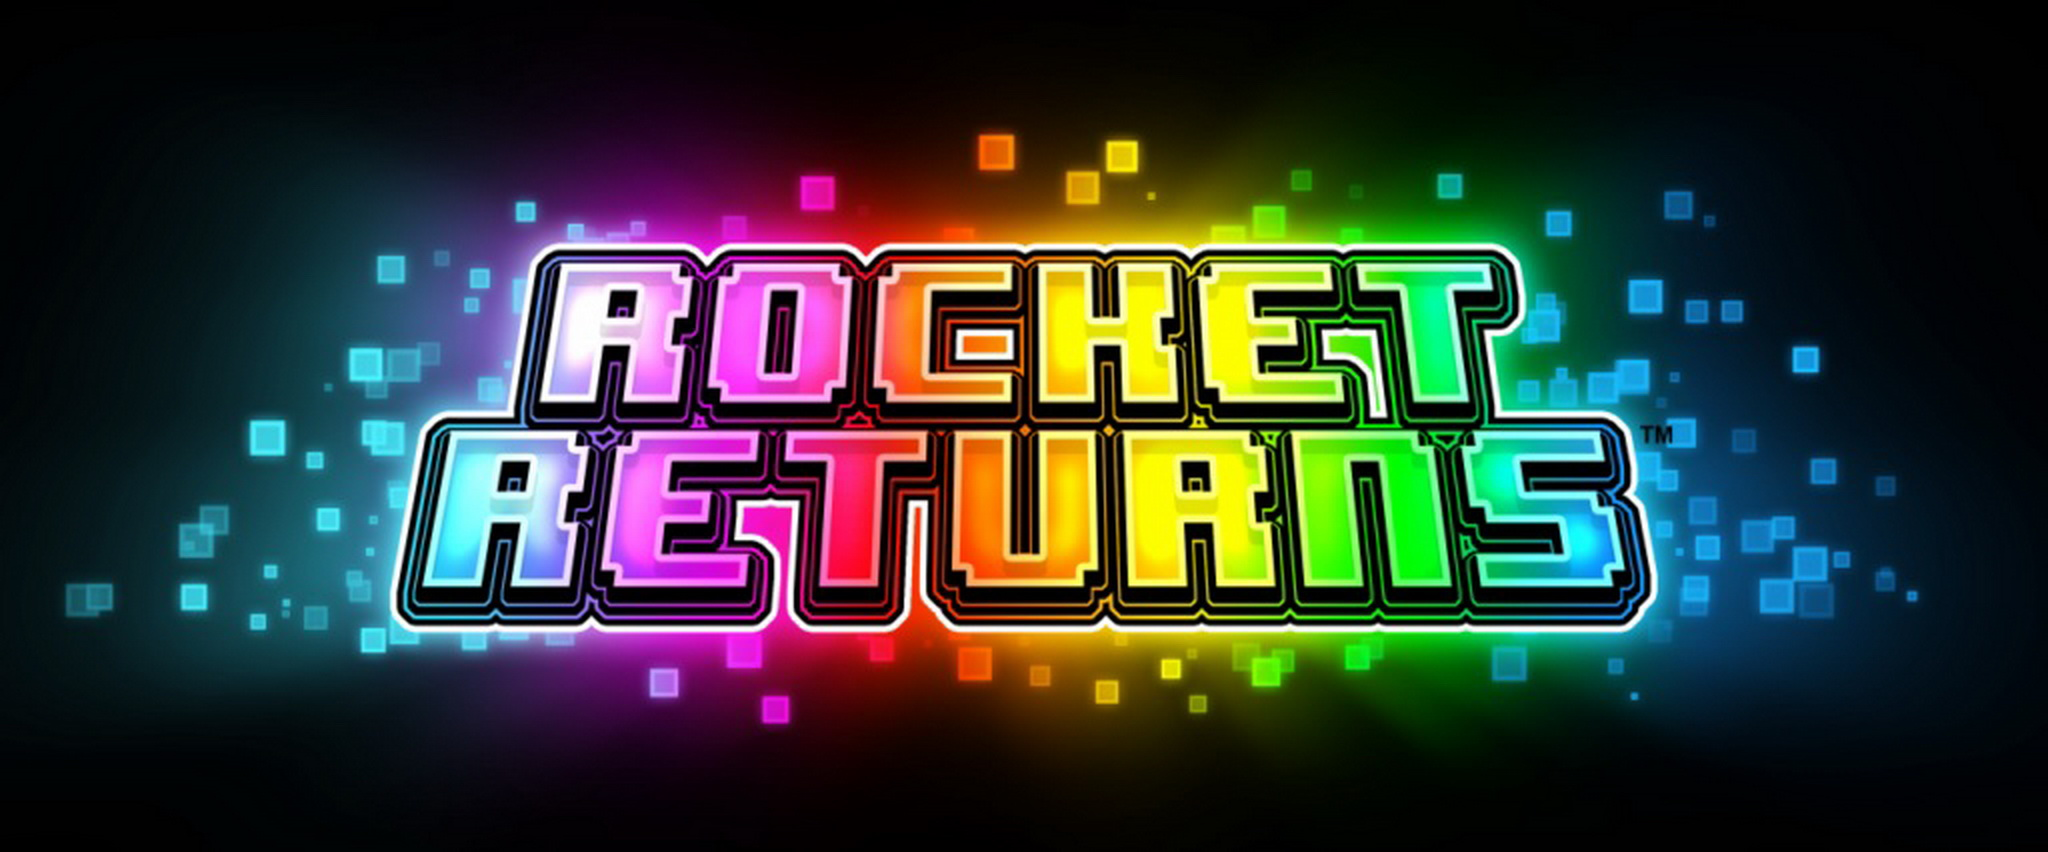 The Rocket Returns Online Slot Demo Game by Bally